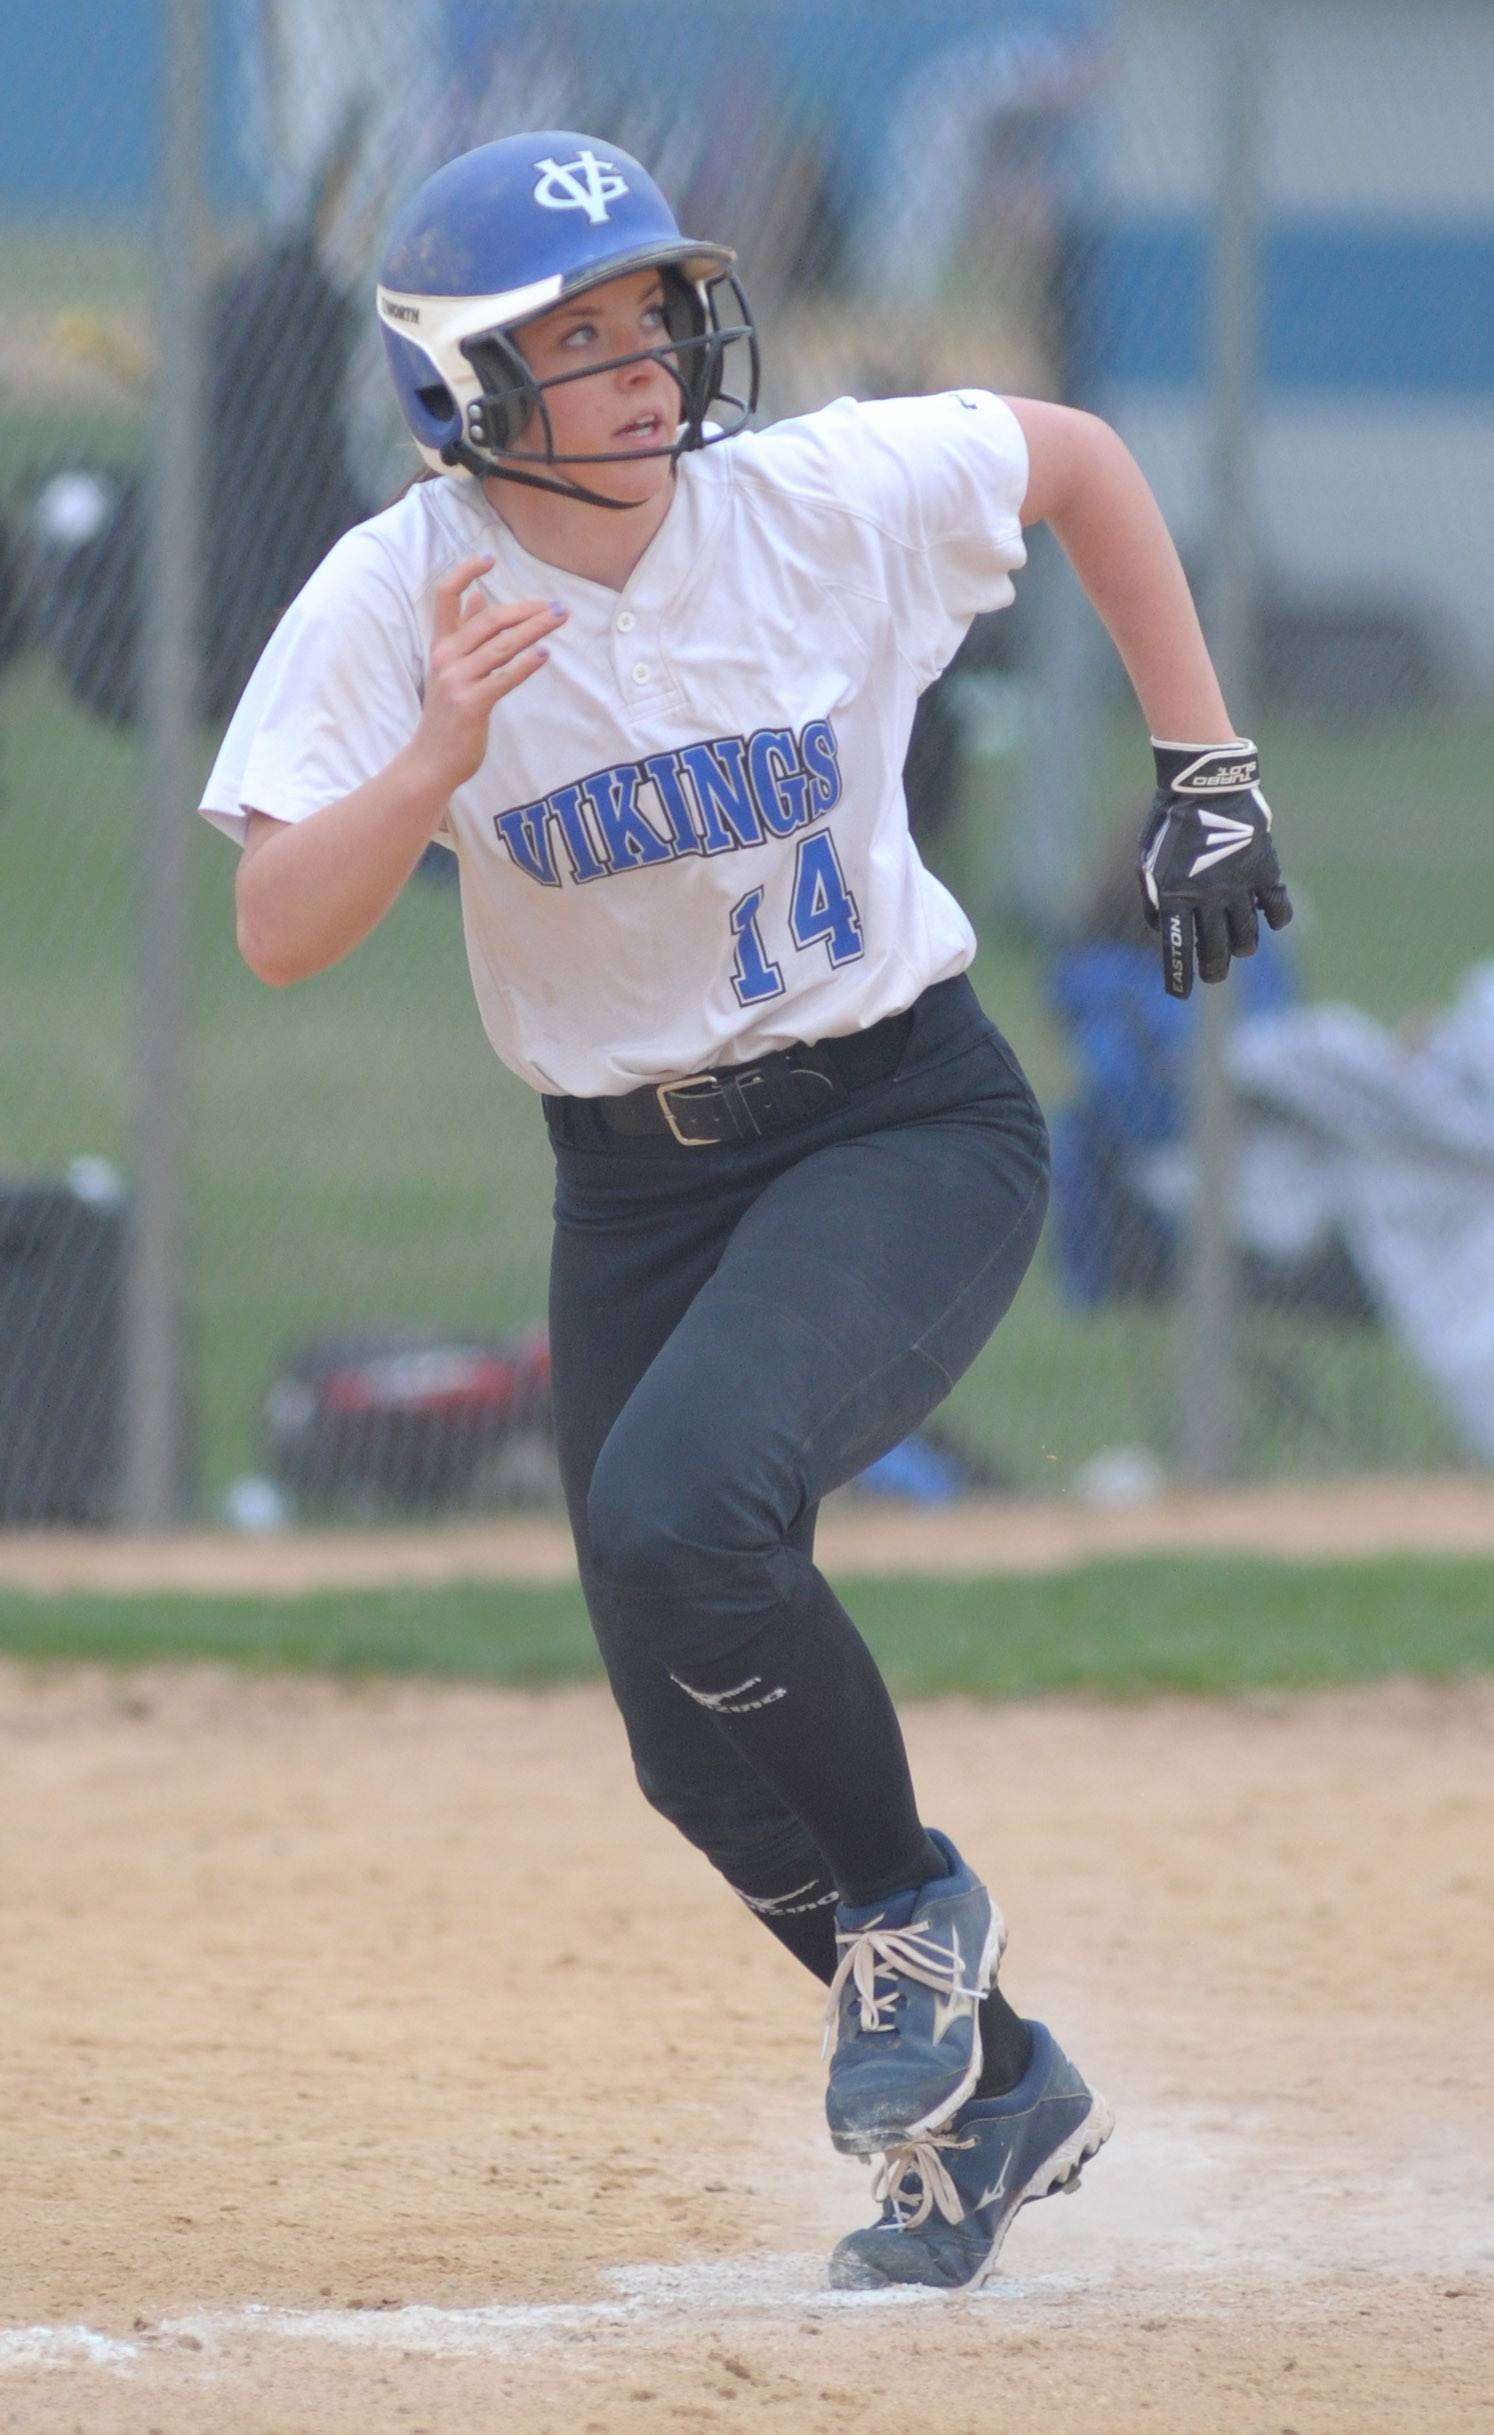 Geneva's Kaitlyn Plocinski heads for home plate in the fourth inning of game vs. Batavia on Wednesday, April 23.